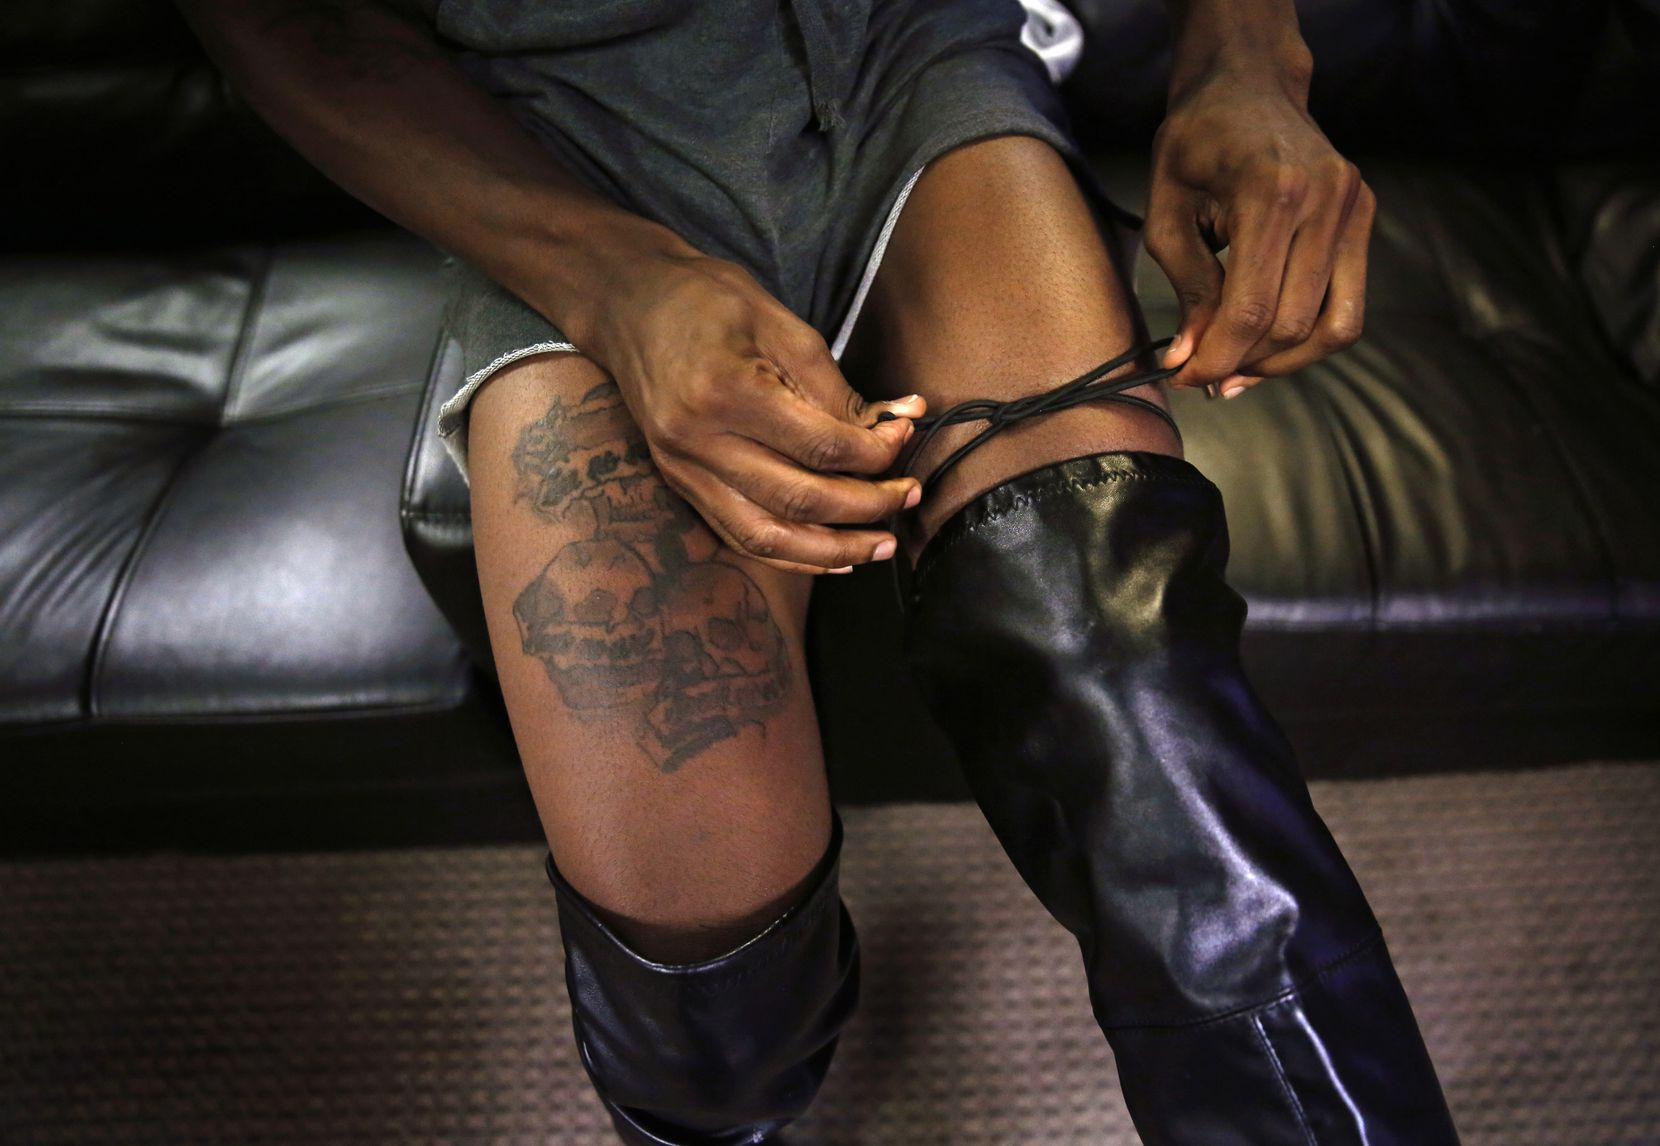 Andrew Williams ties up knee-high boots before a voguing practice at United Black Ellument in Dallas on Friday, Aug. 10, 2018.